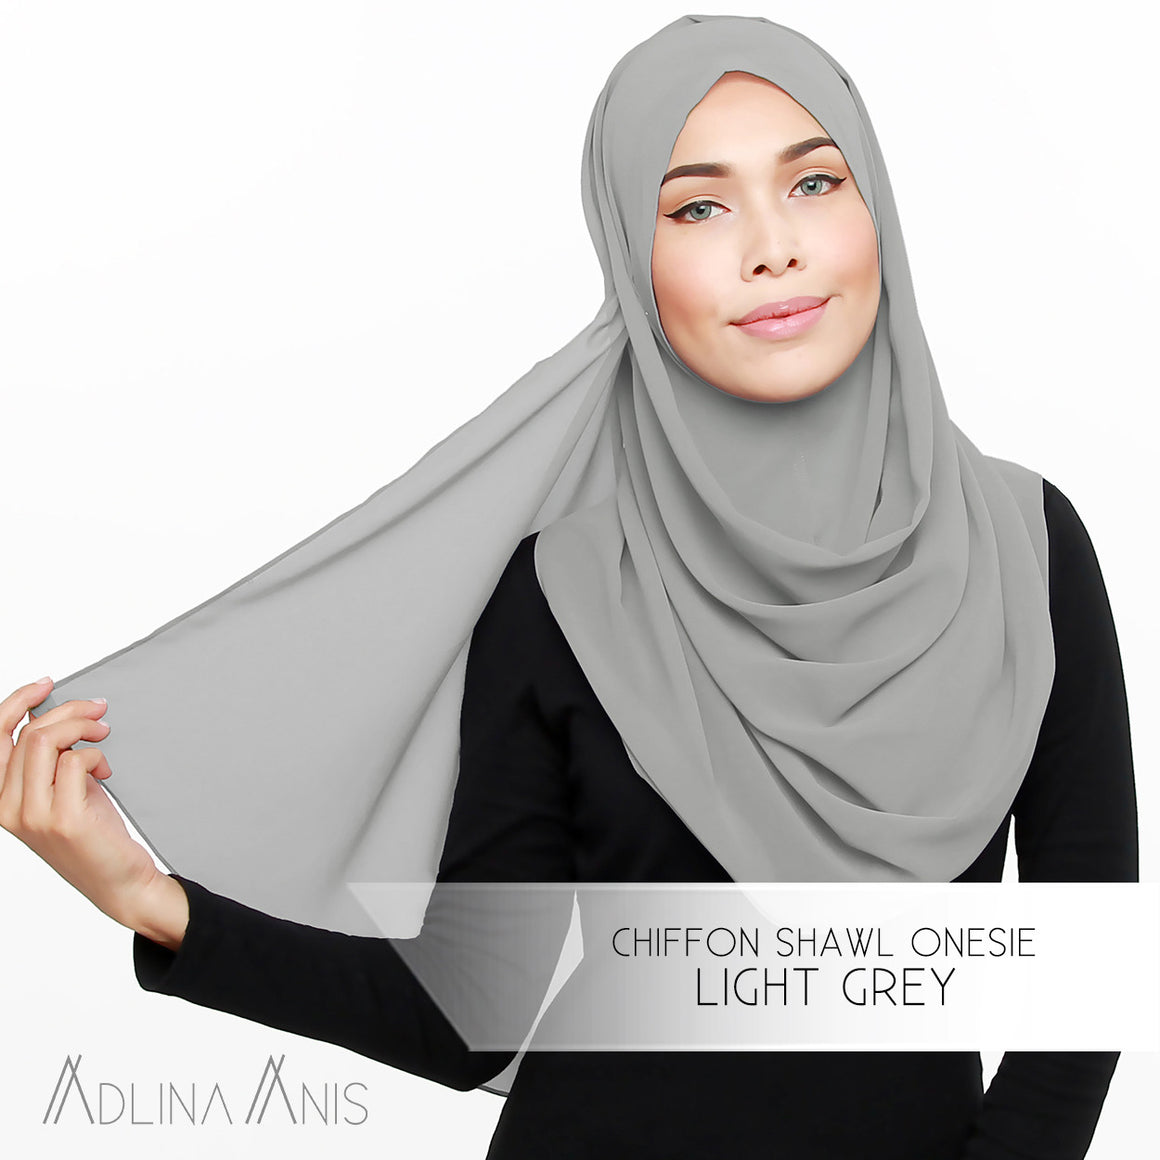 Adlina Anis - Chiffon Shawl Onesie - Light Grey